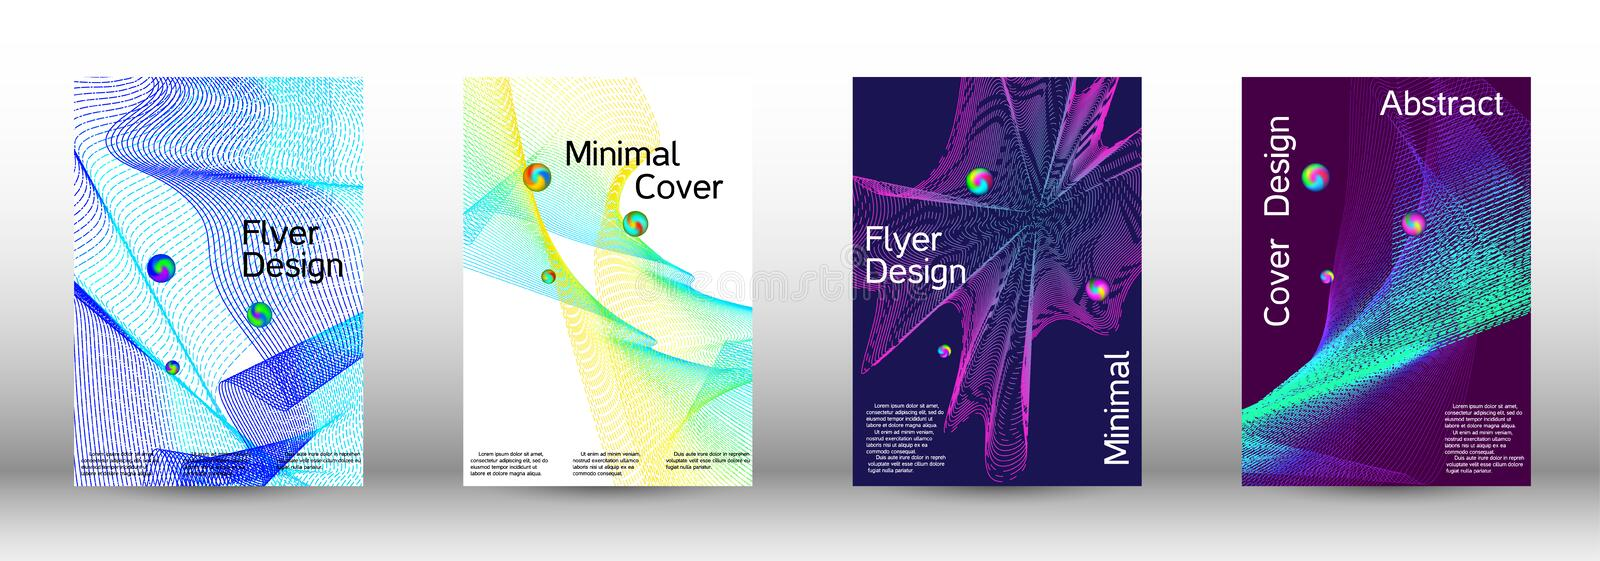 Cover design. Minimum coverage of a vector. Cover design. Set of modern abstract musical backgrounds. Sound flyer for creating a fashionable  cover, banner vector illustration